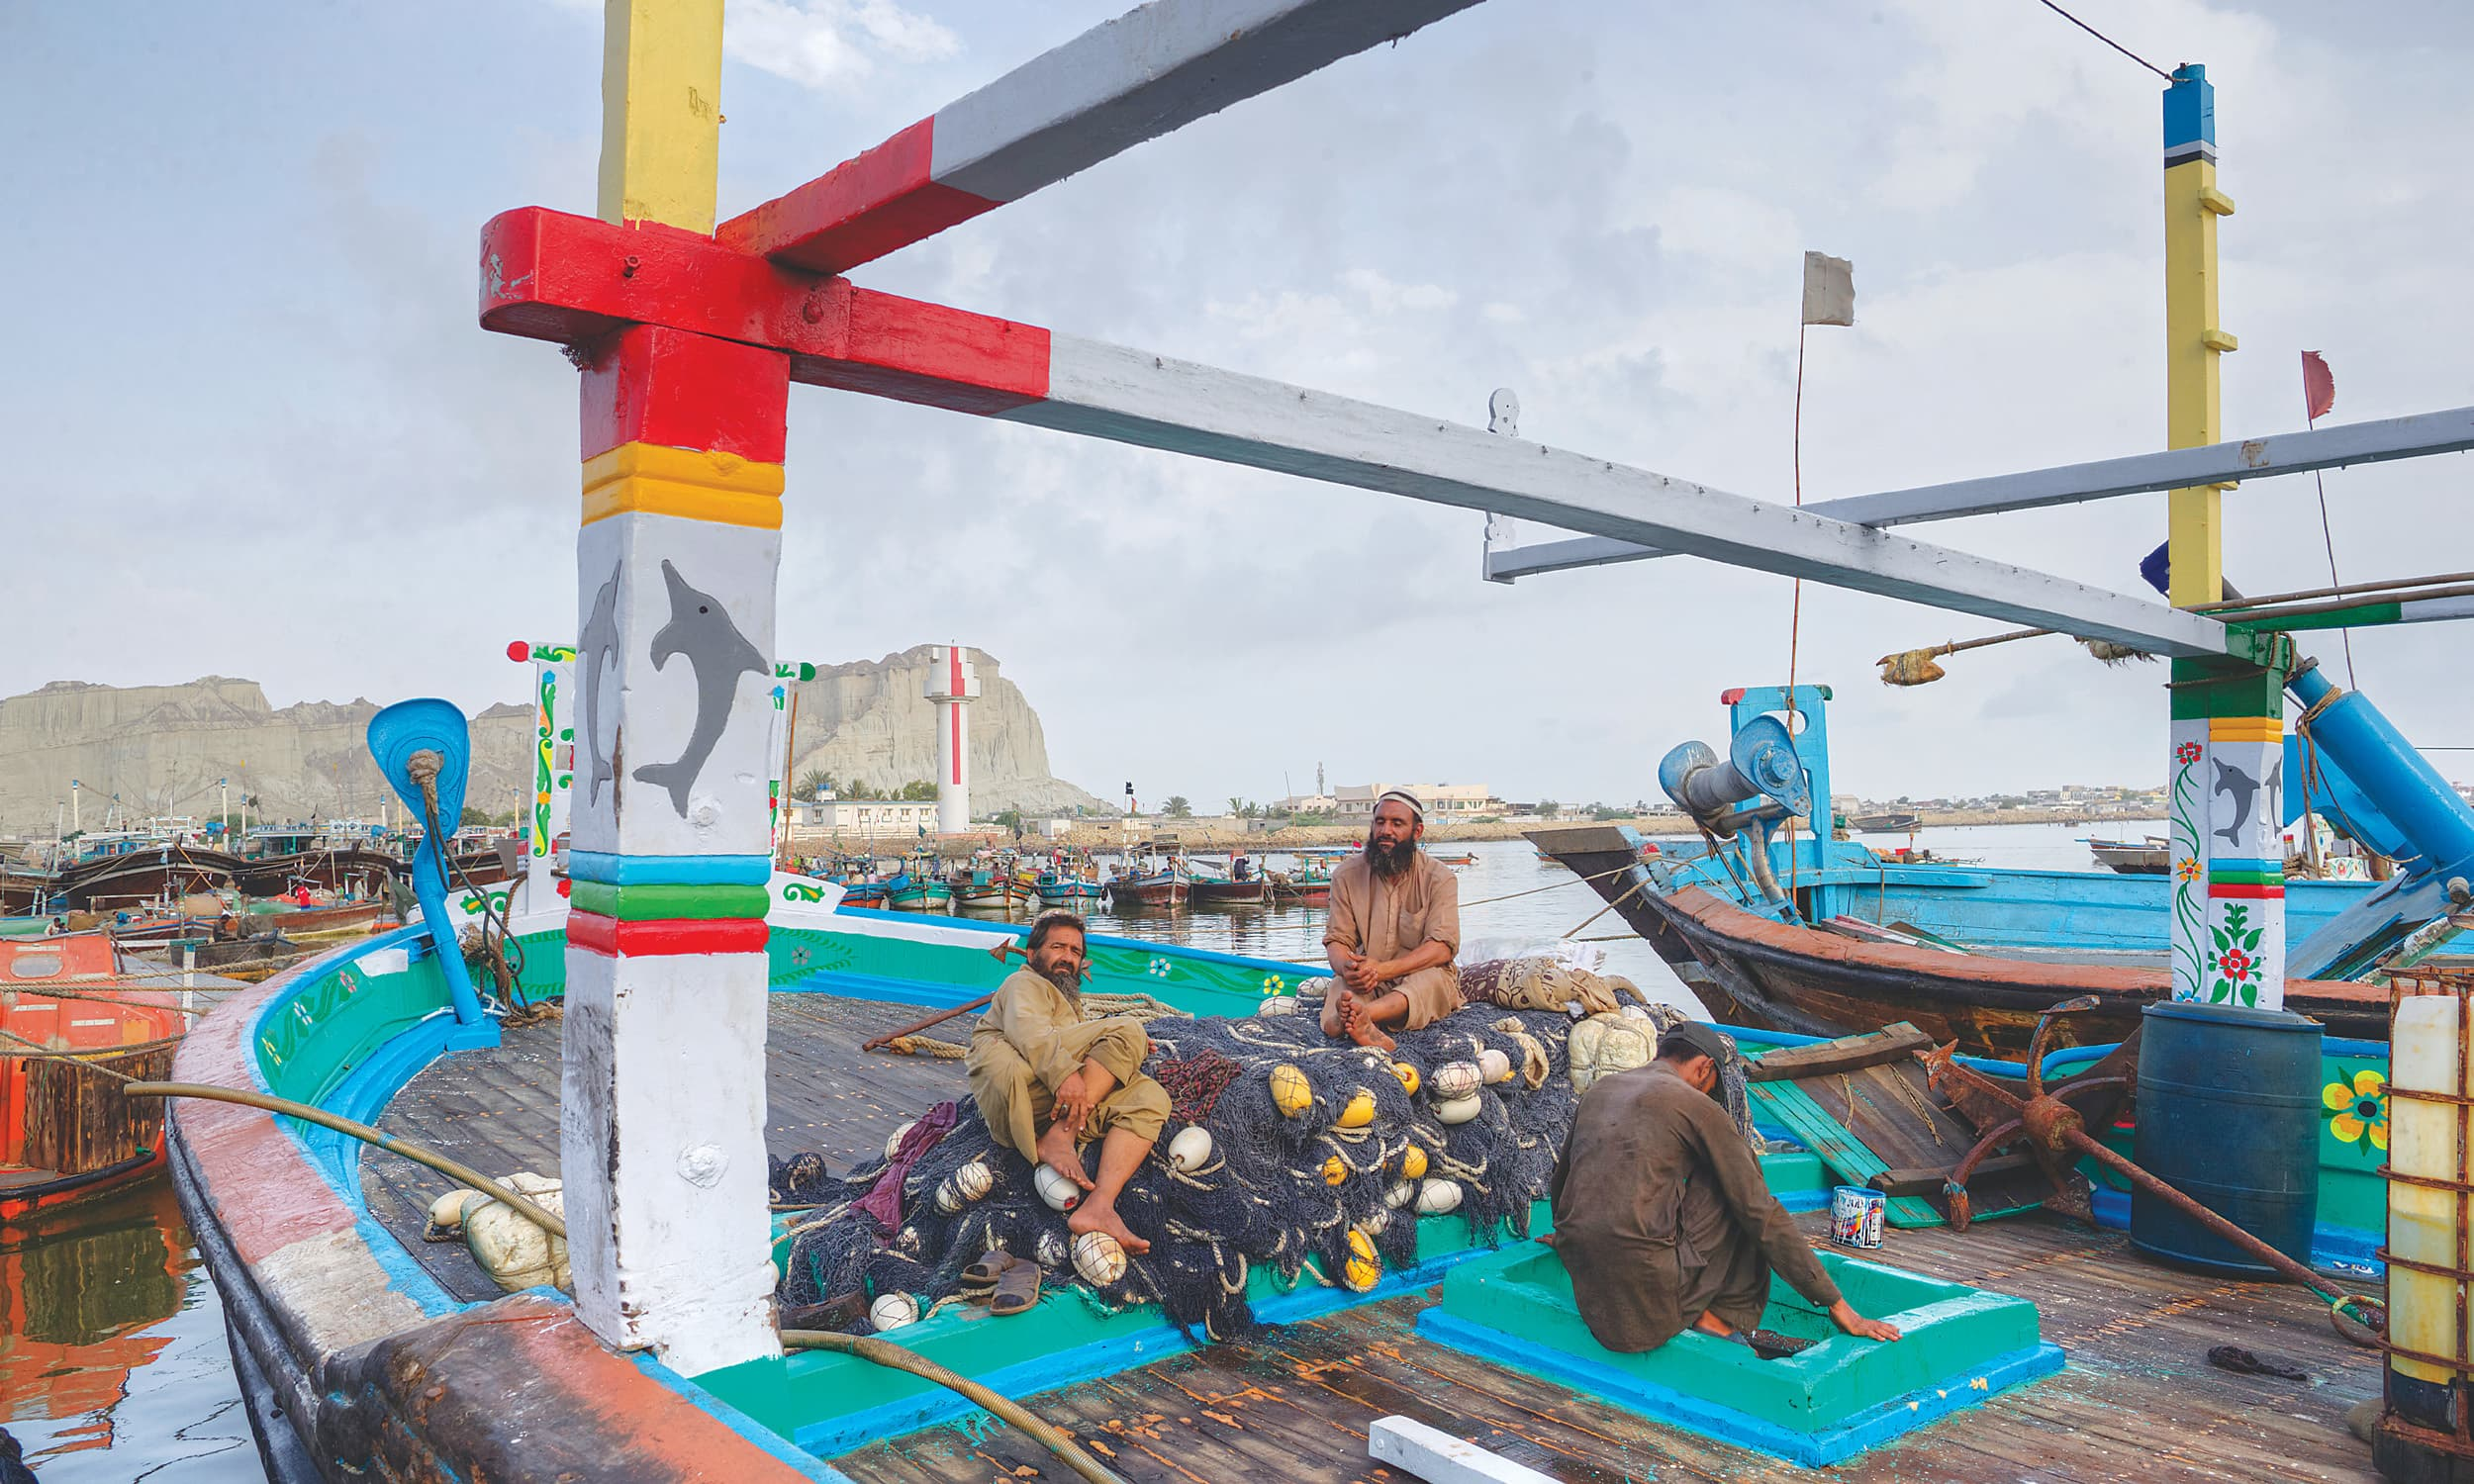 Fishermen at the Gawadar fish market, which will be relocated to allow for the expansion of the port | Kohi Marri